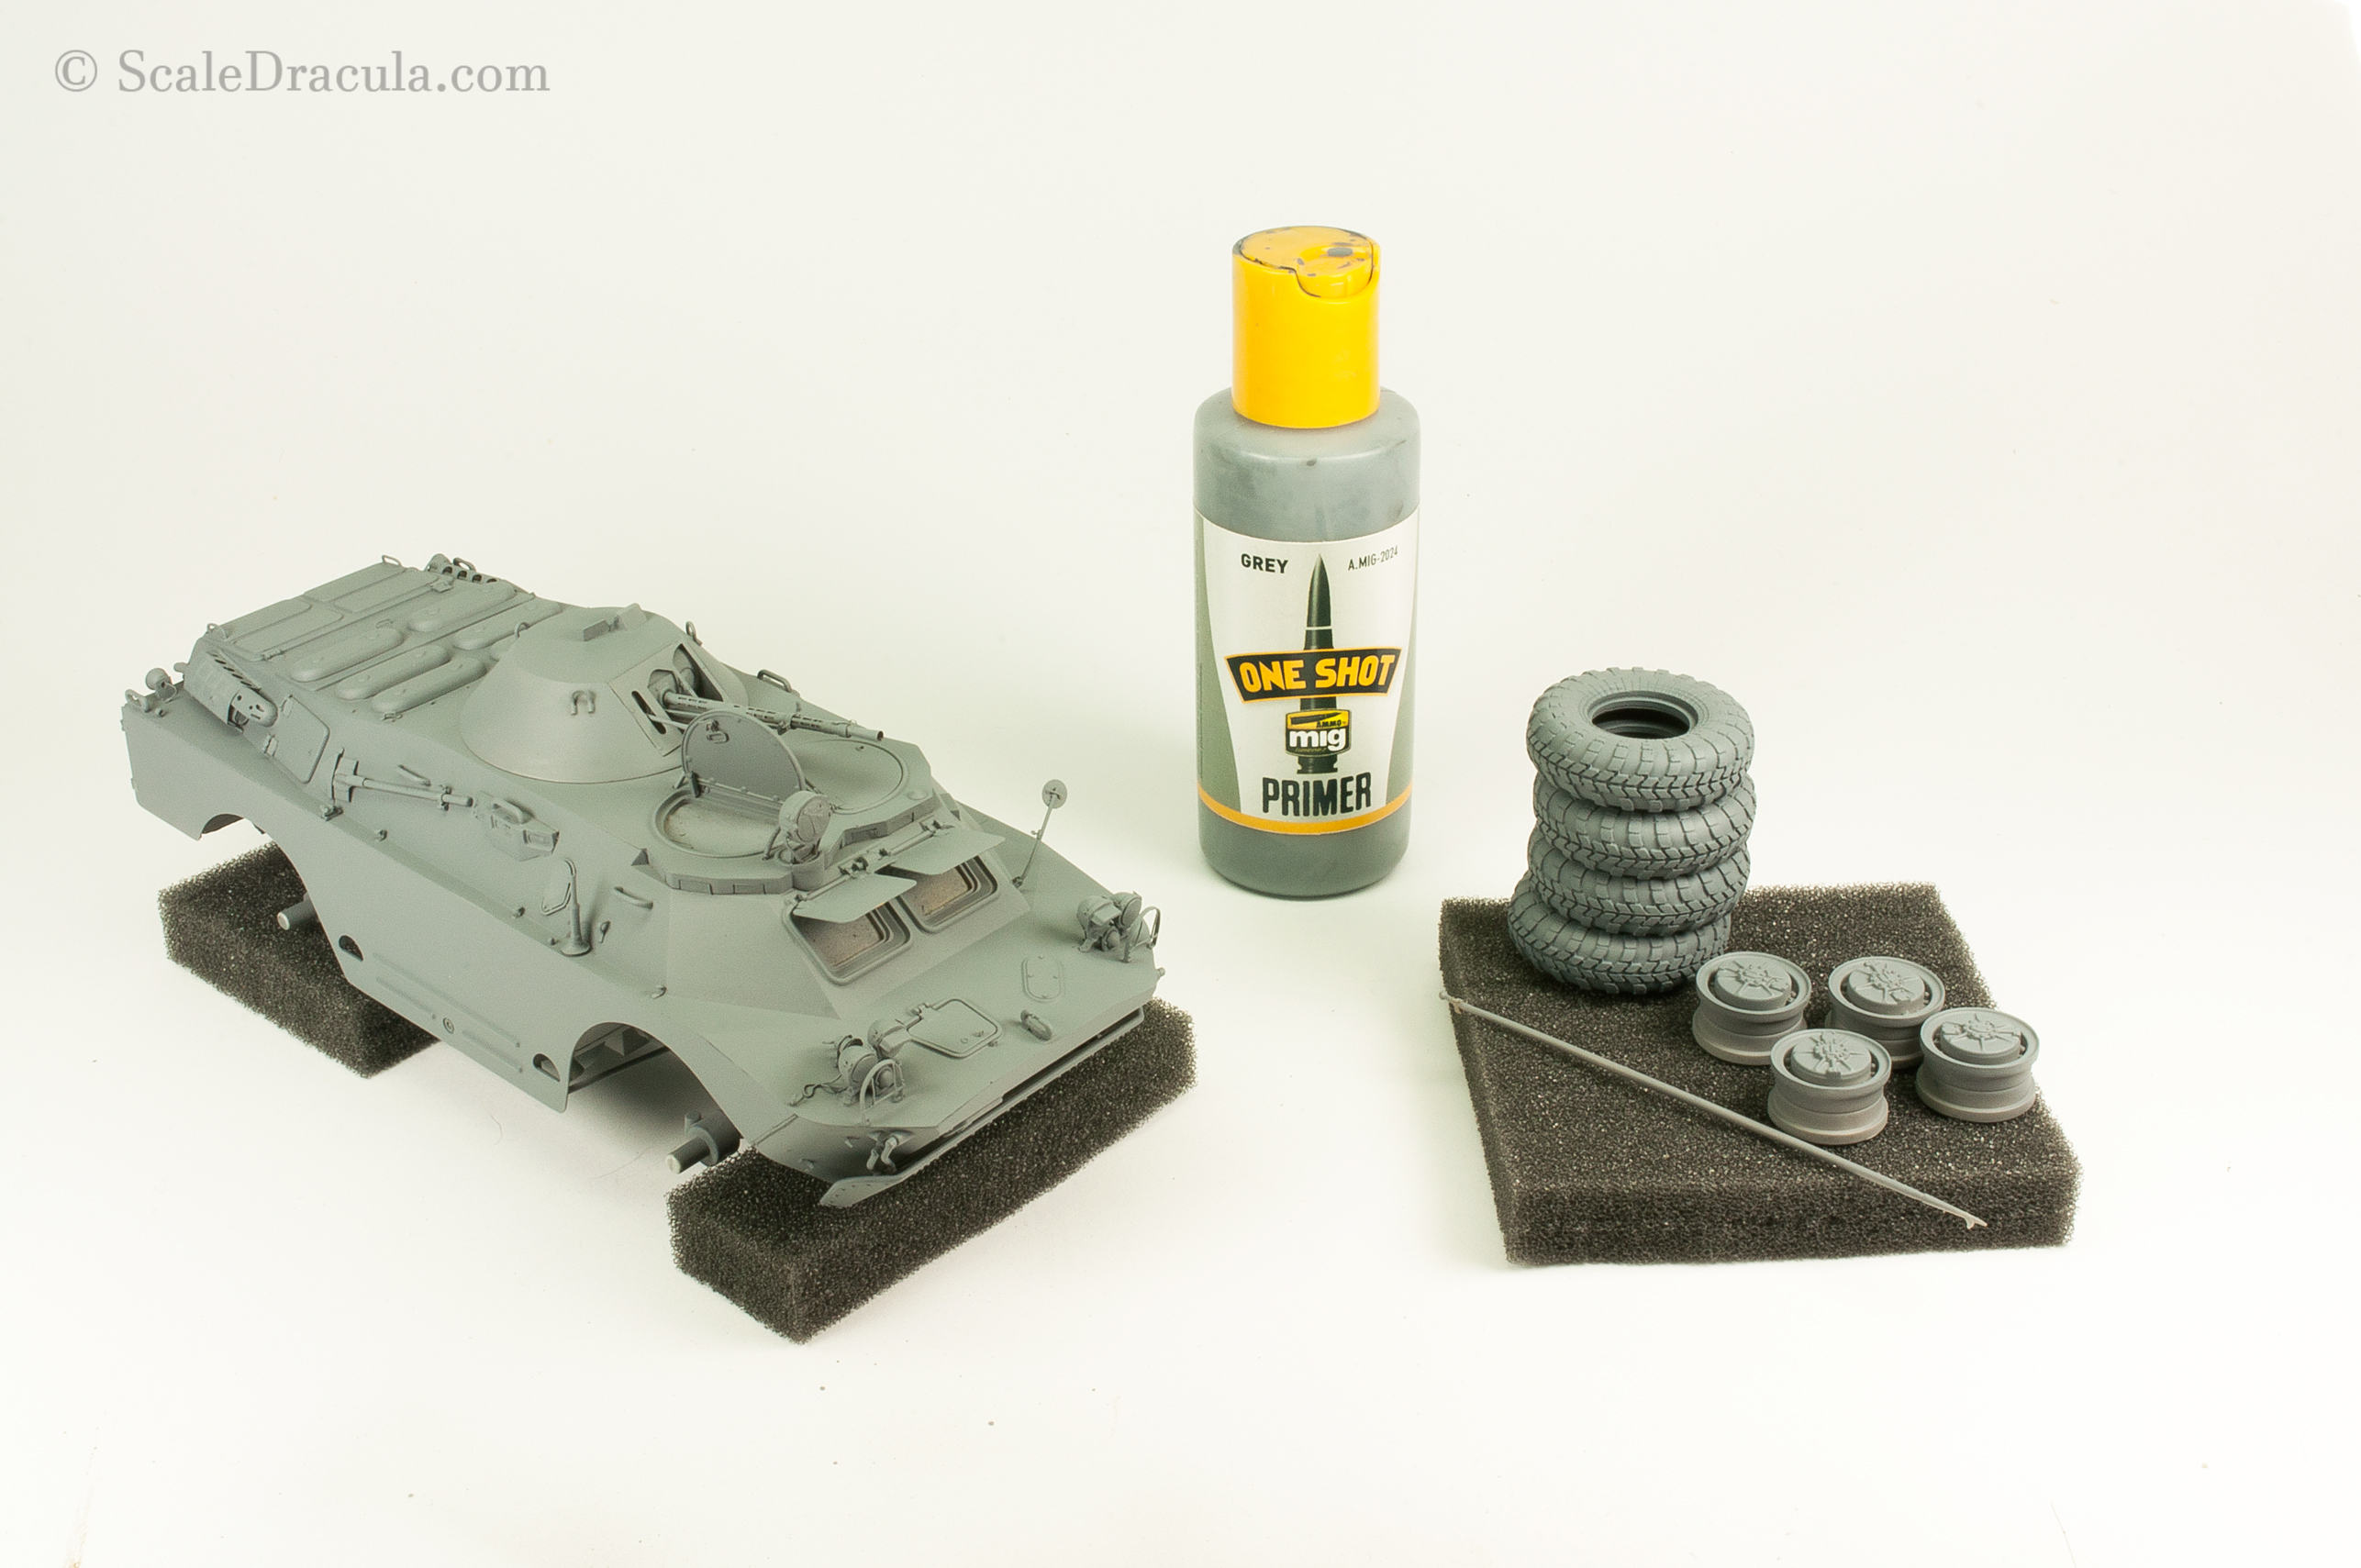 Model primed with One Shot Primer, BRDM-2 by Trumpeter